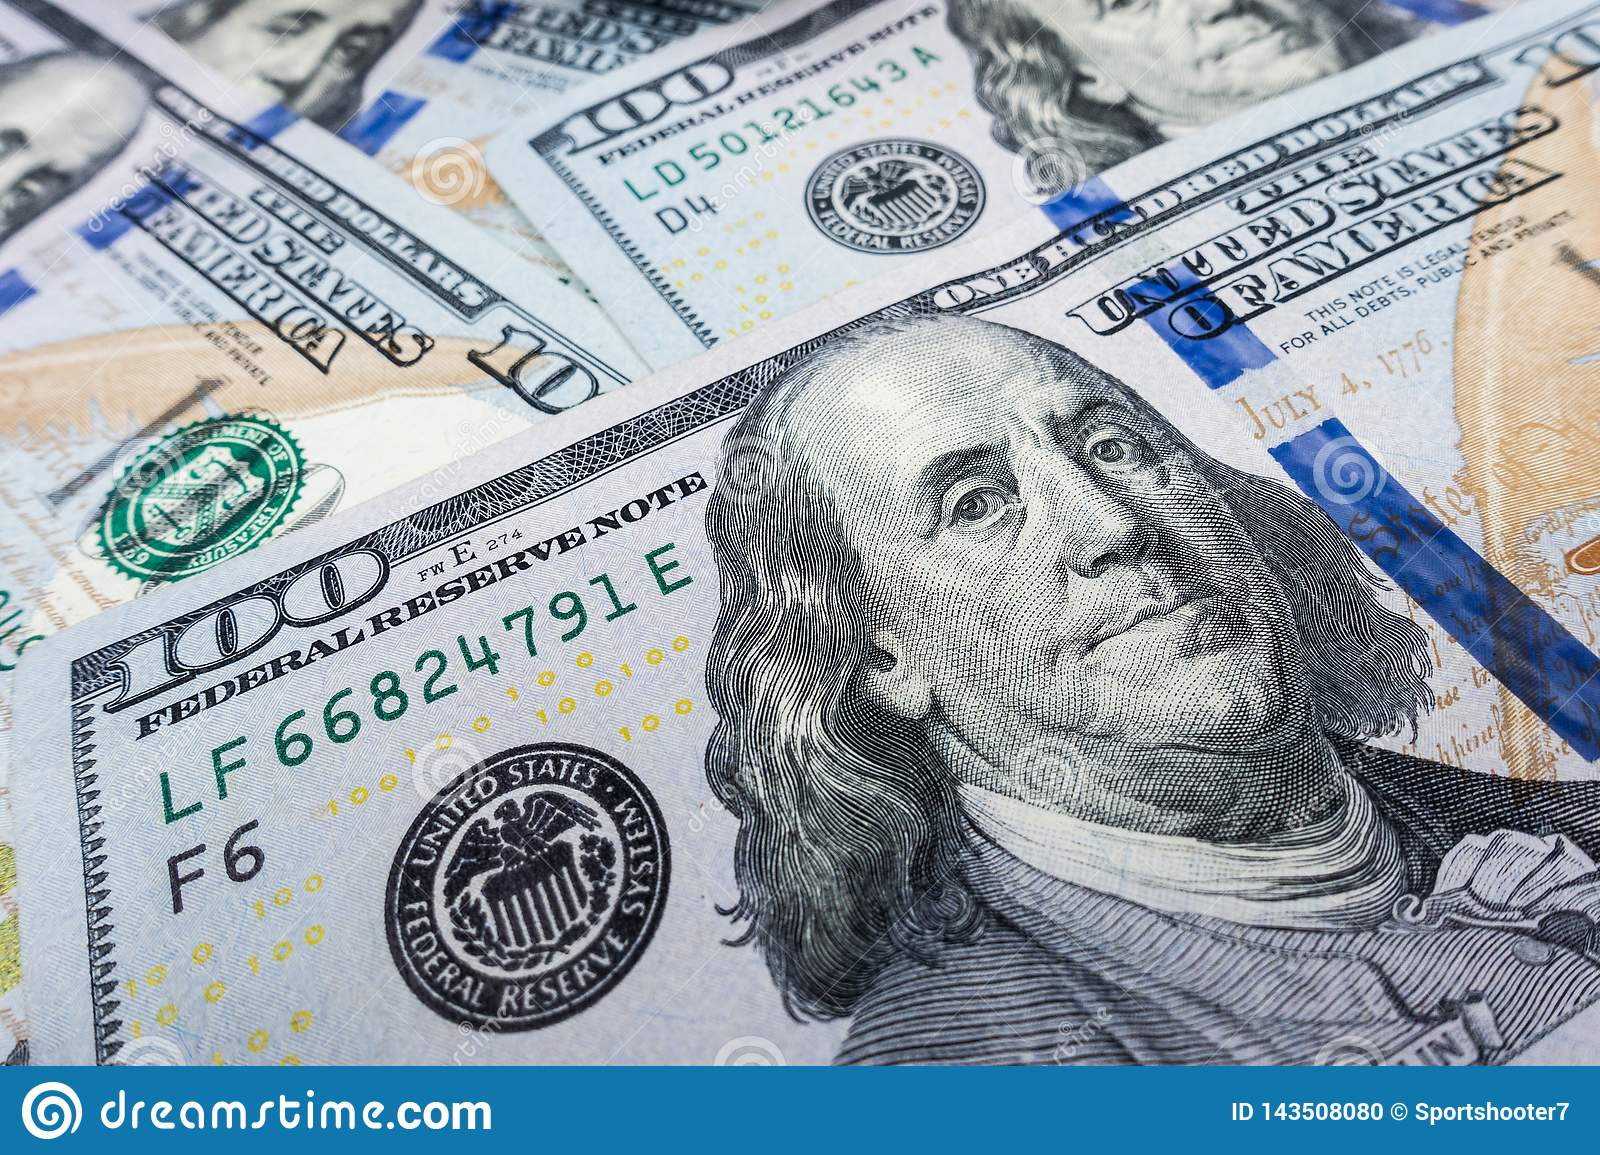 $100 bill  close-up. Wealth and finance concept.